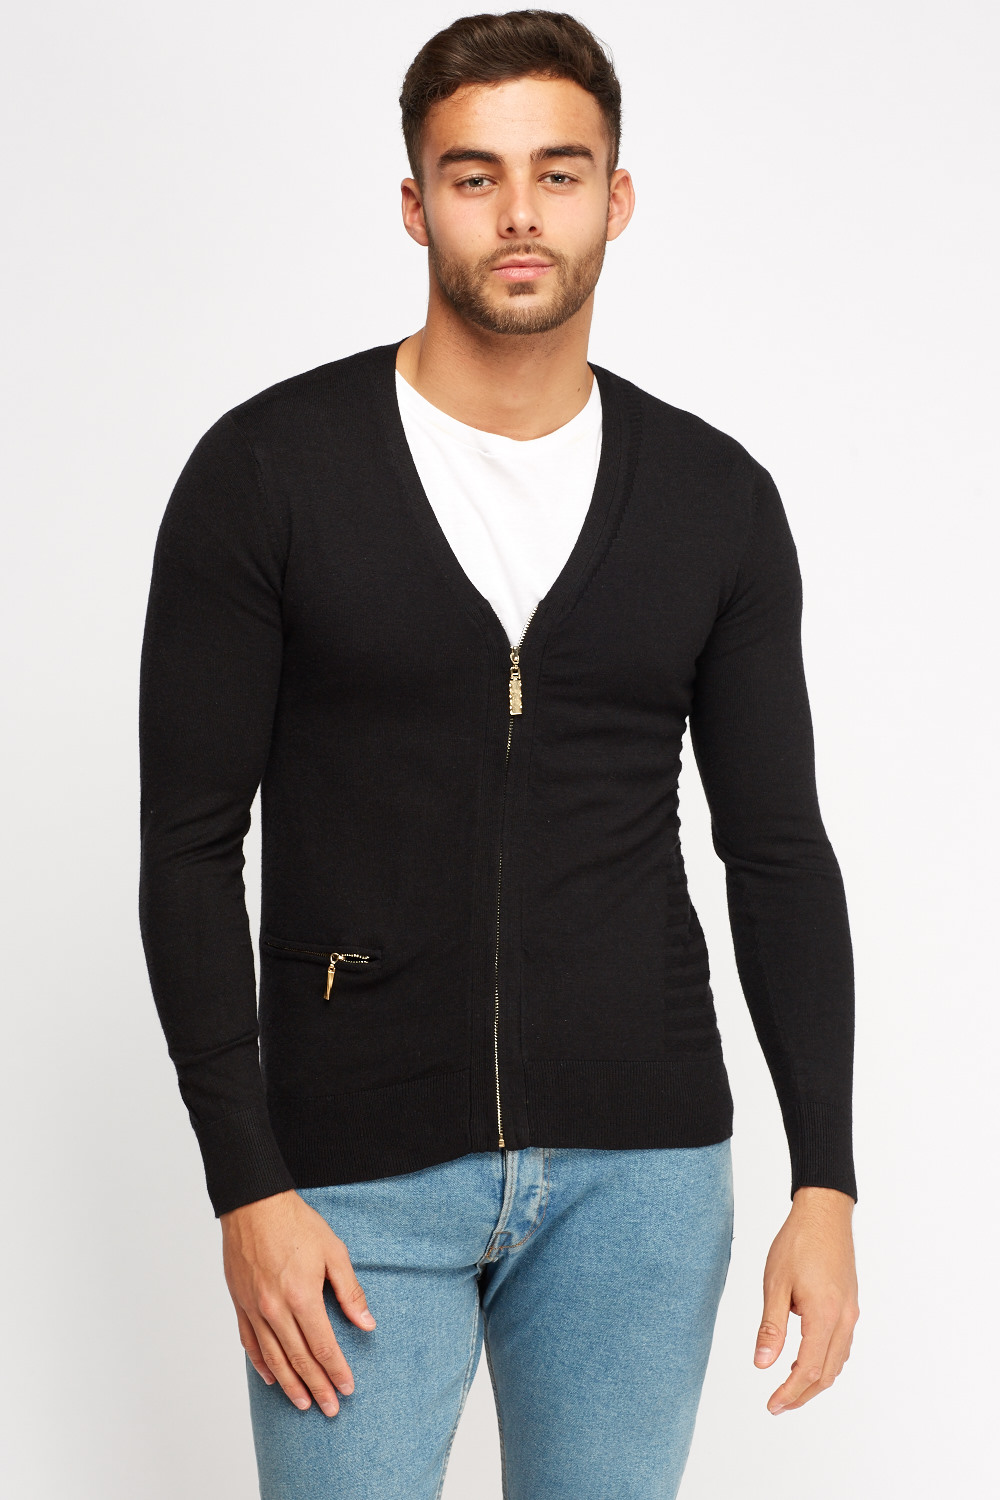 Cheap Men's Cardigans for £5 | Everything5Pounds